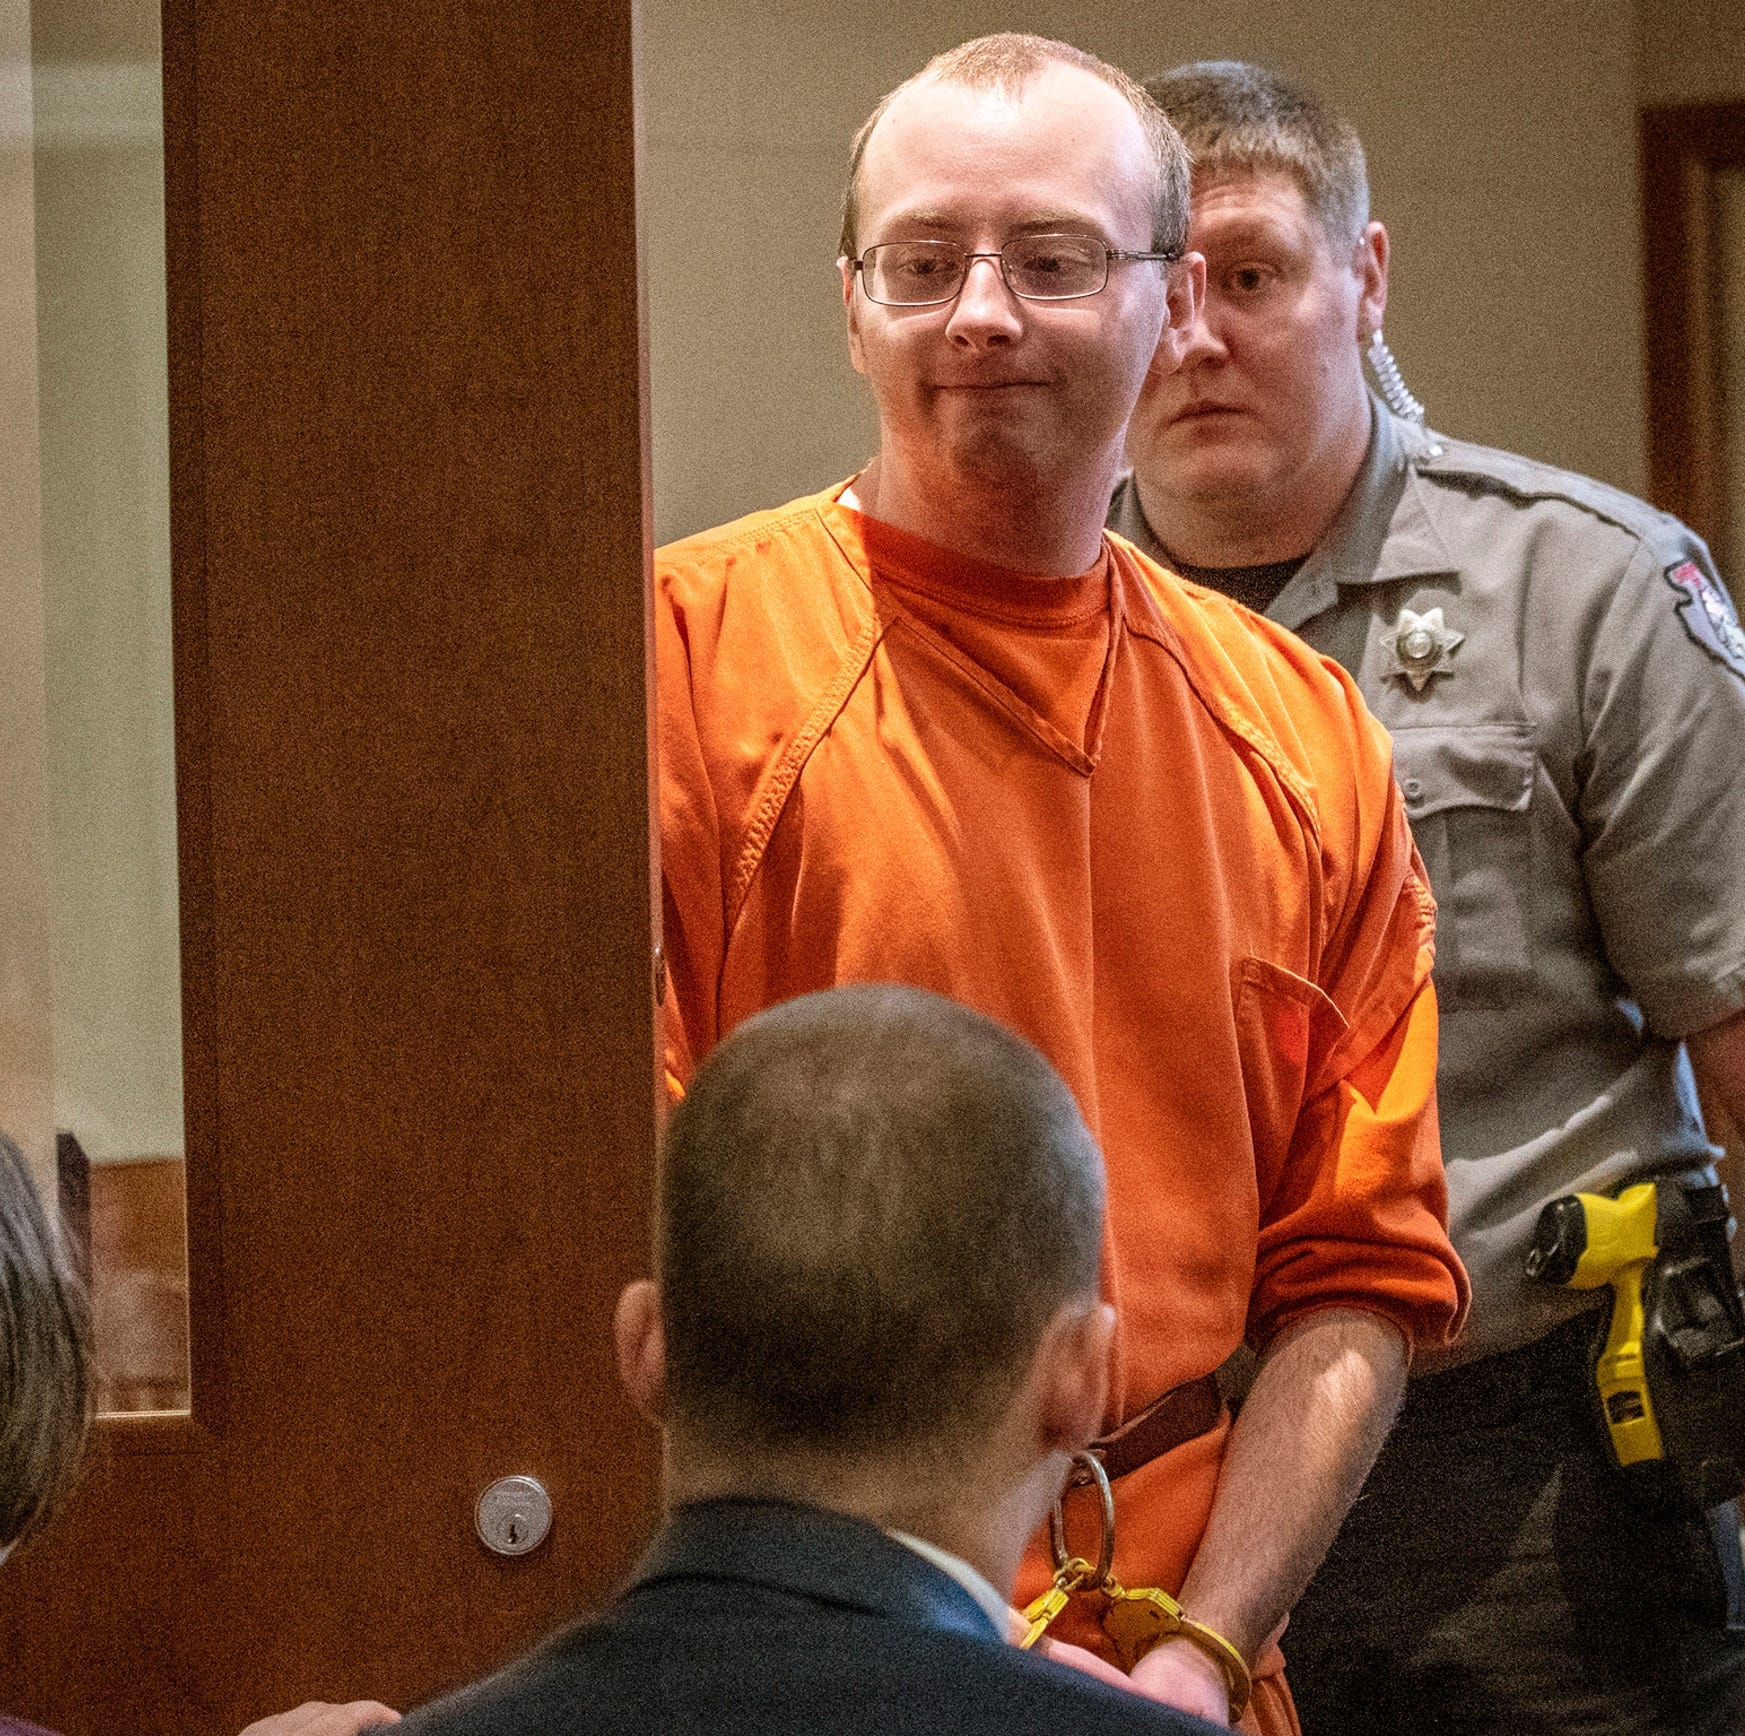 Jayme Closs abductor pleads guilty to kidnapping her, killing her parents